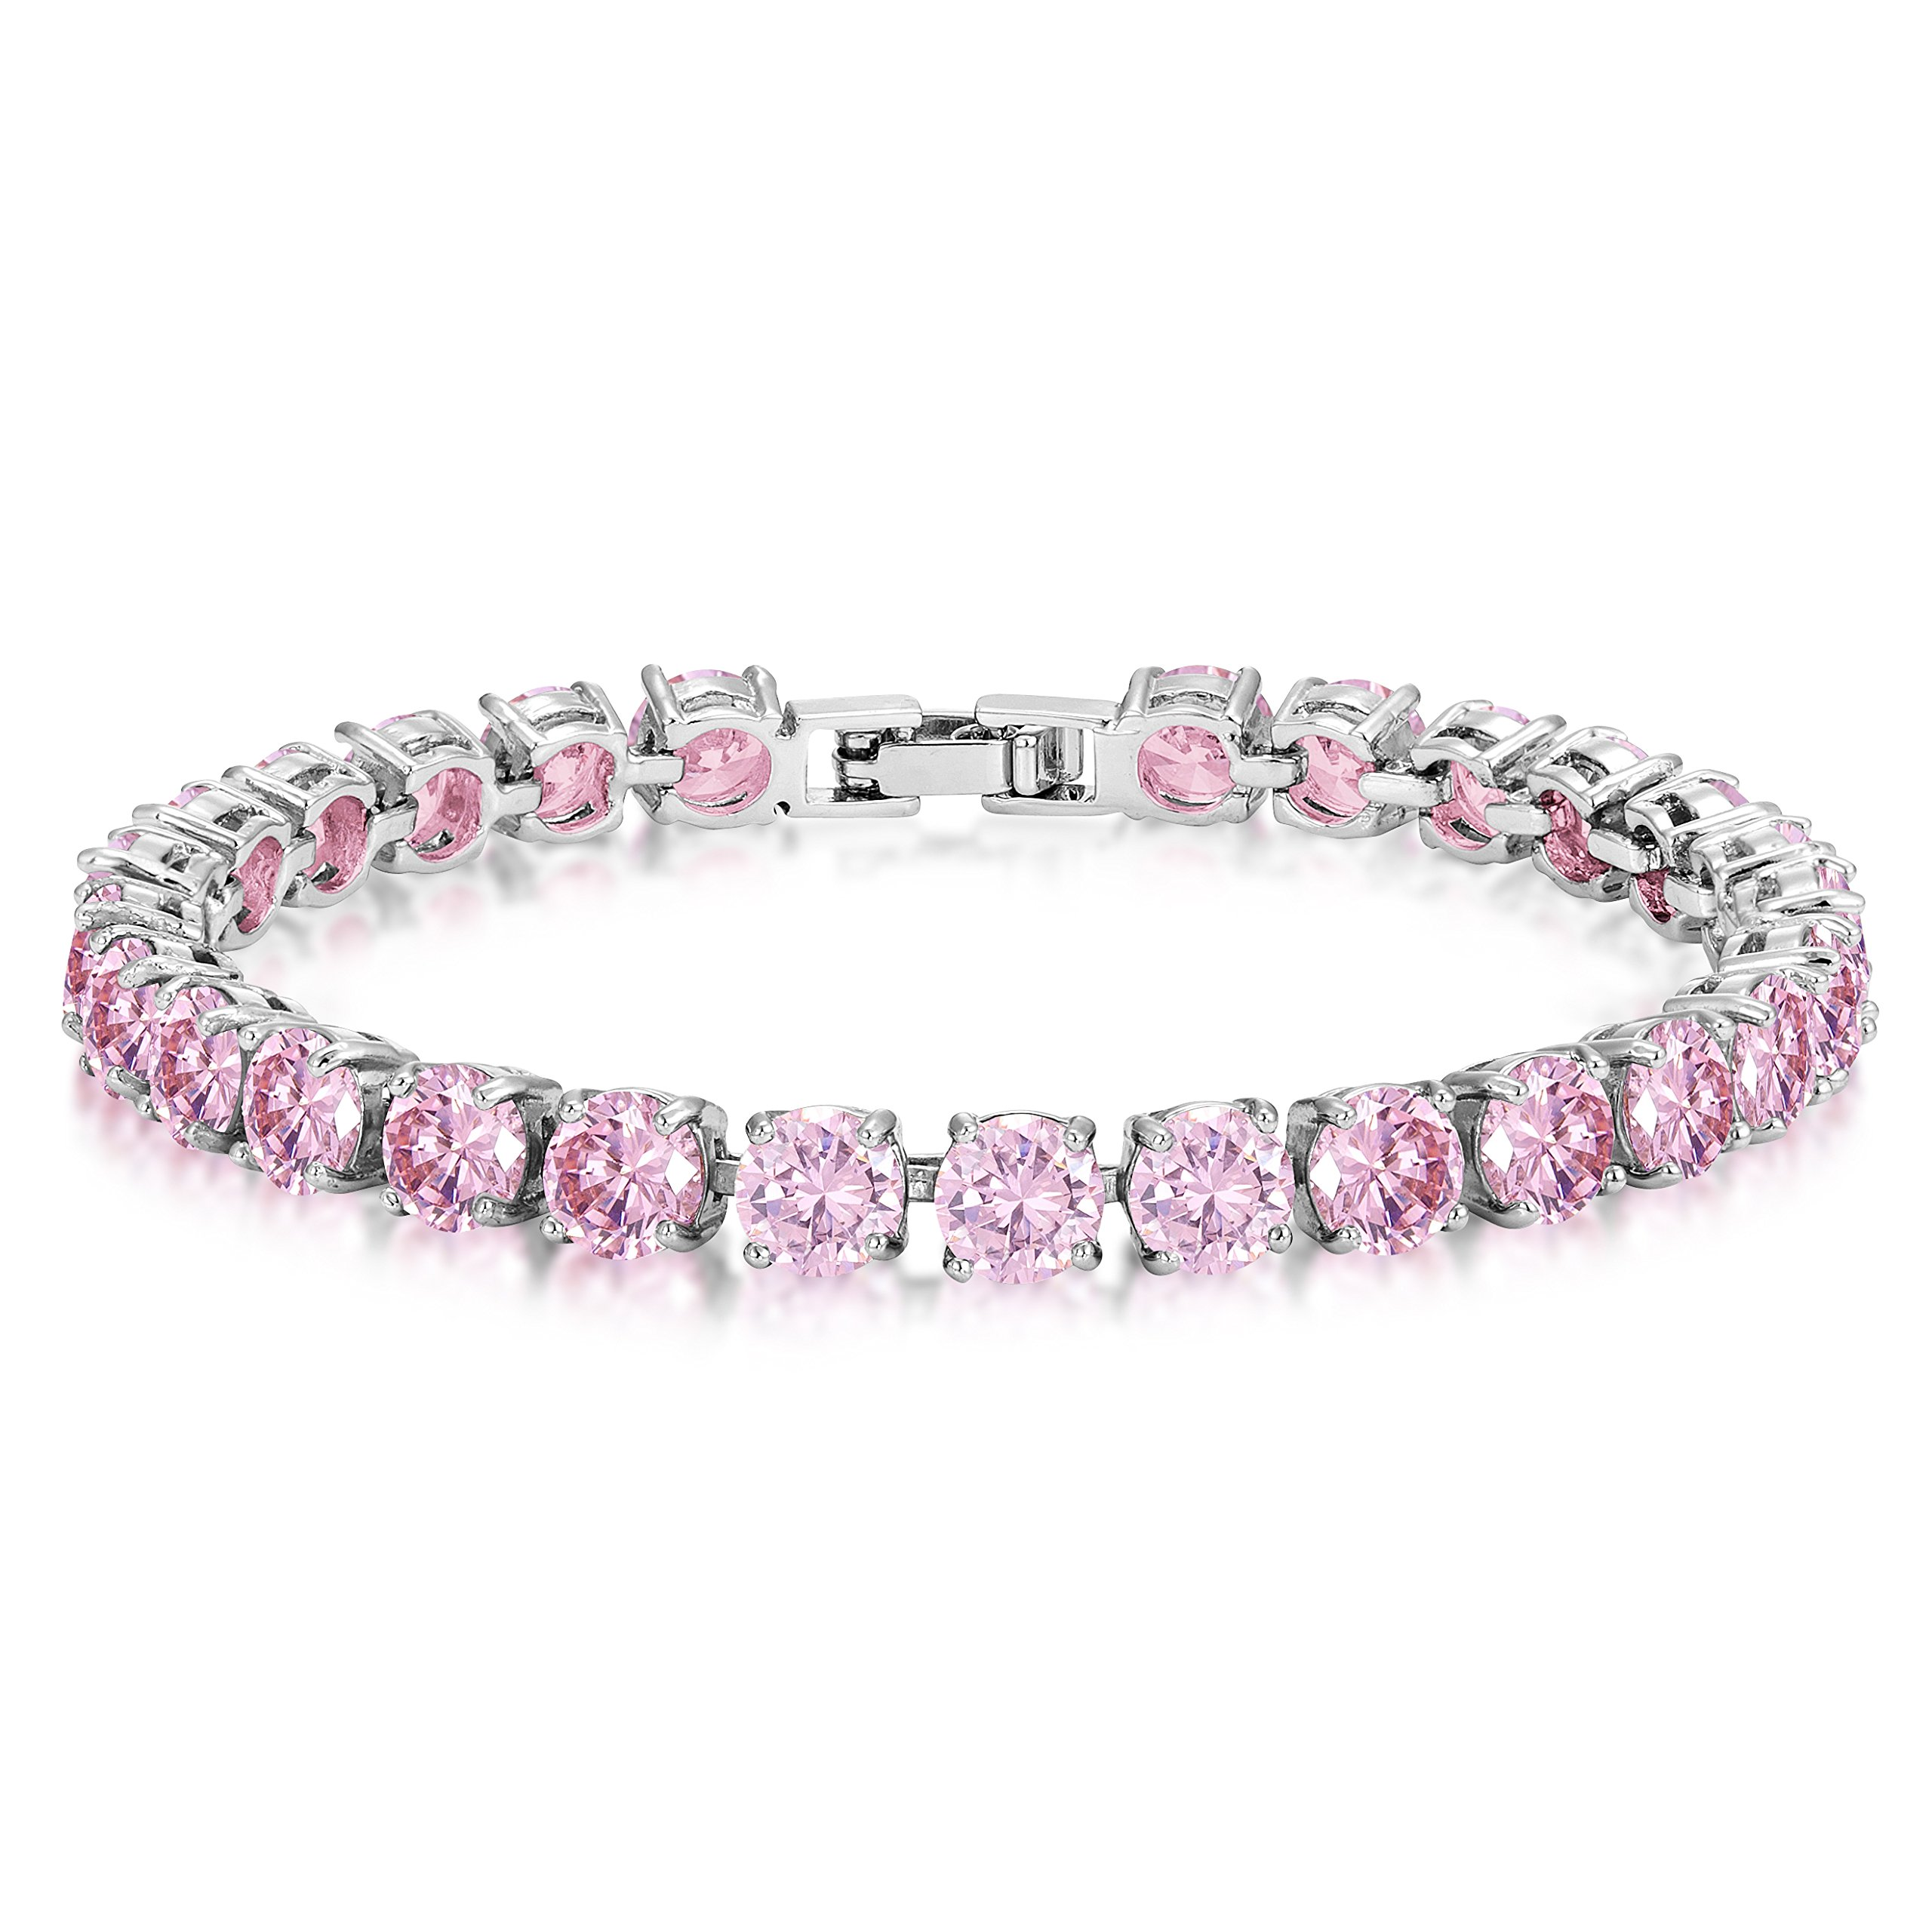 Pink CZ Tennis Bracelet 6mm Round Cut Silver over Brass 7 inch